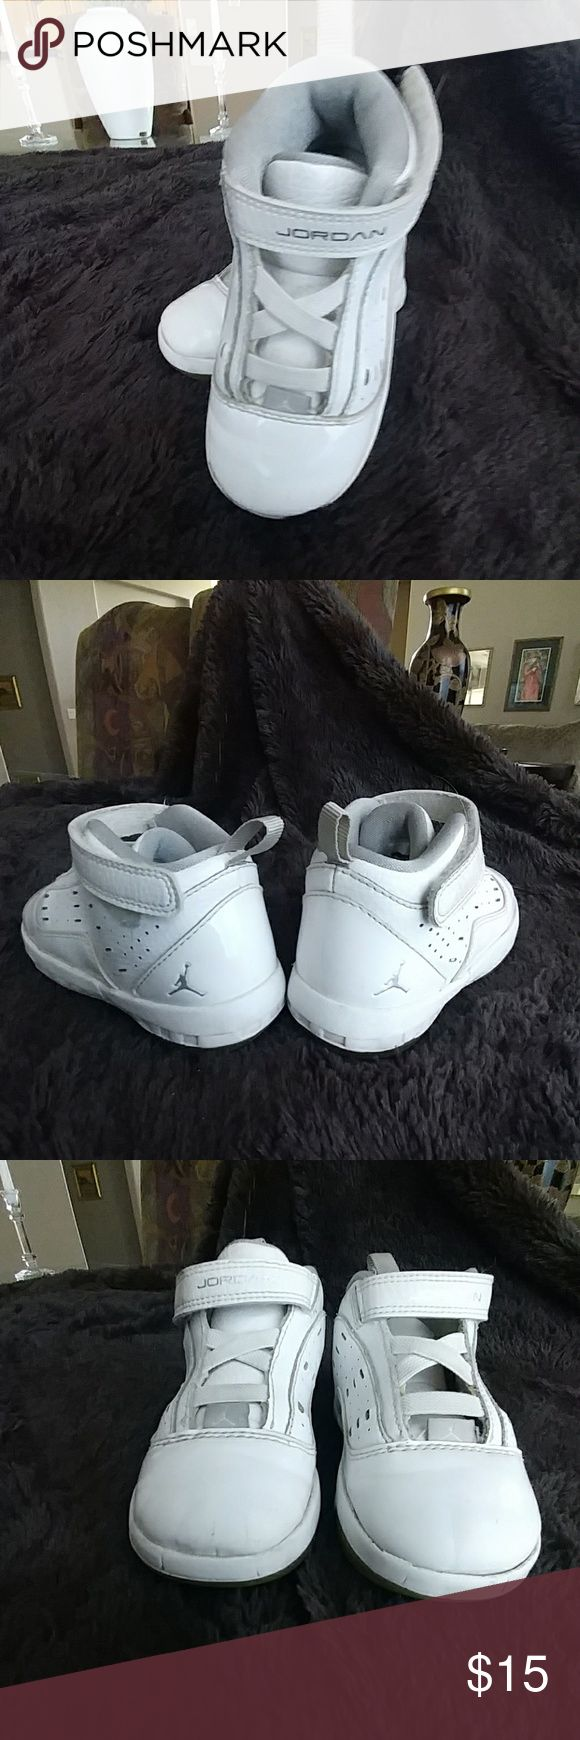 Toddler Jordan Shoes Michael Jordan toddler high top, Velcro strap closure Used condition with much more life in them. Michael Jordan Shoes Sneakers